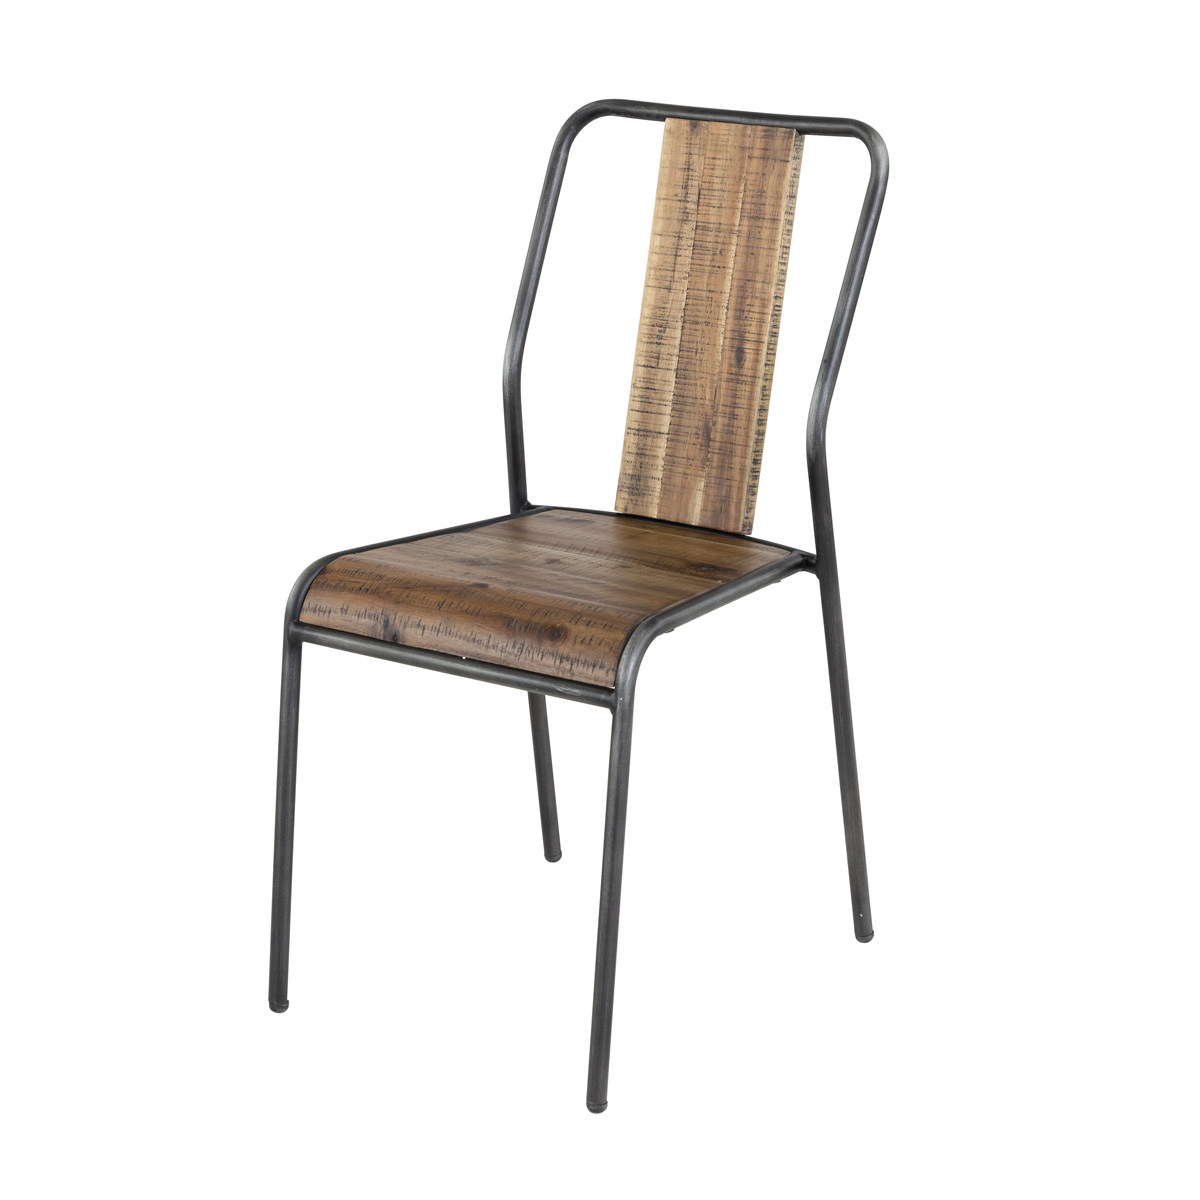 Magasin De Chaises Toulouse Magasin De Chaise Magasin De Chaises Beau Chaise De